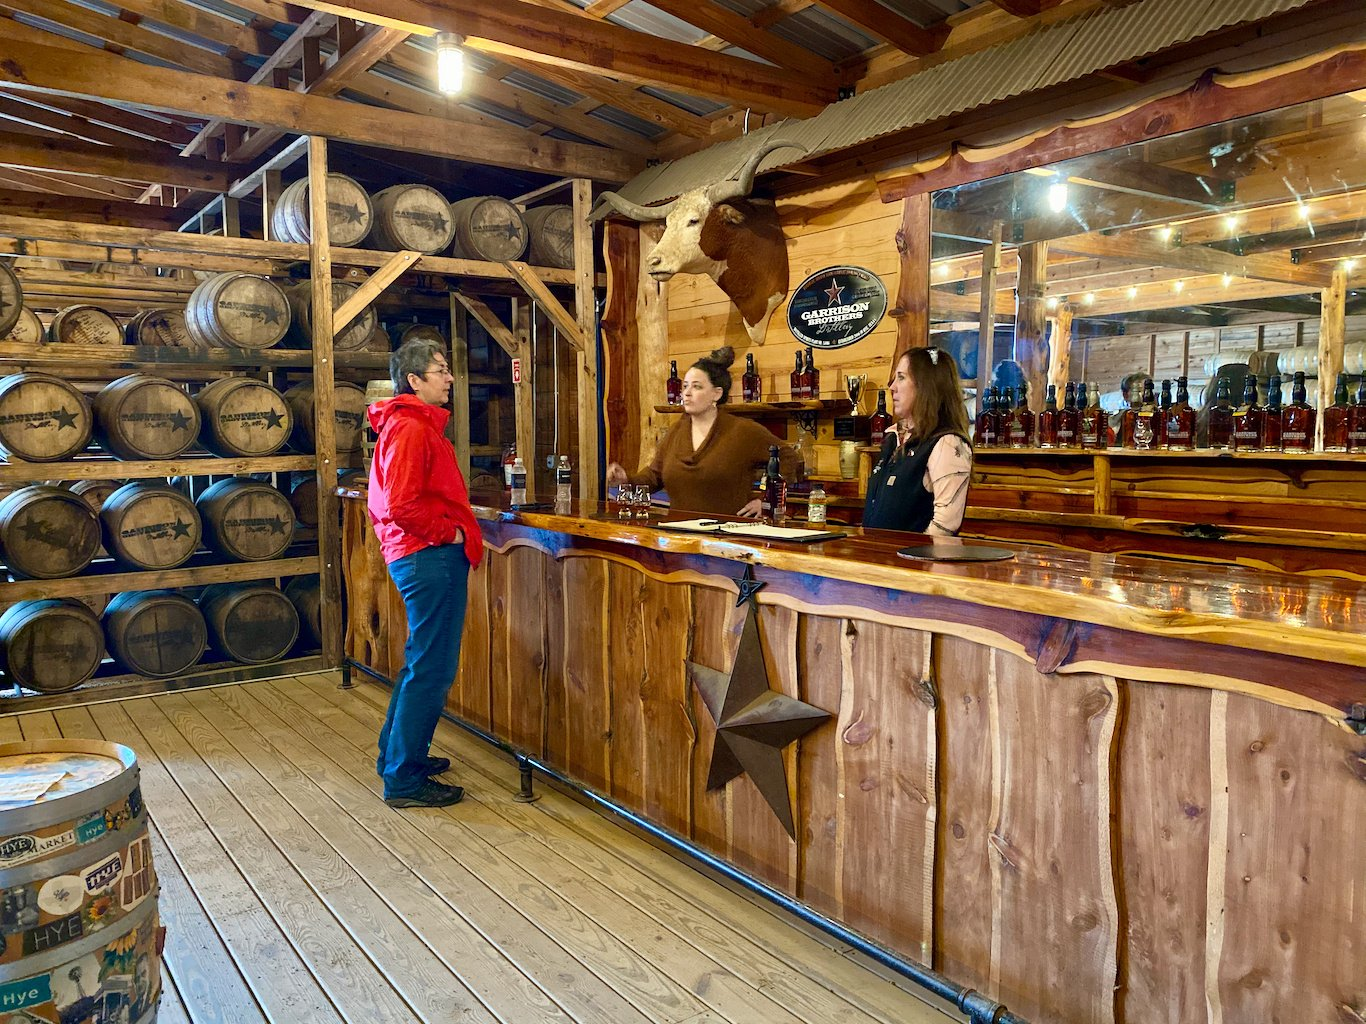 Tasting Bar in Rickhouse 1 - Garrison Brothers Distillery